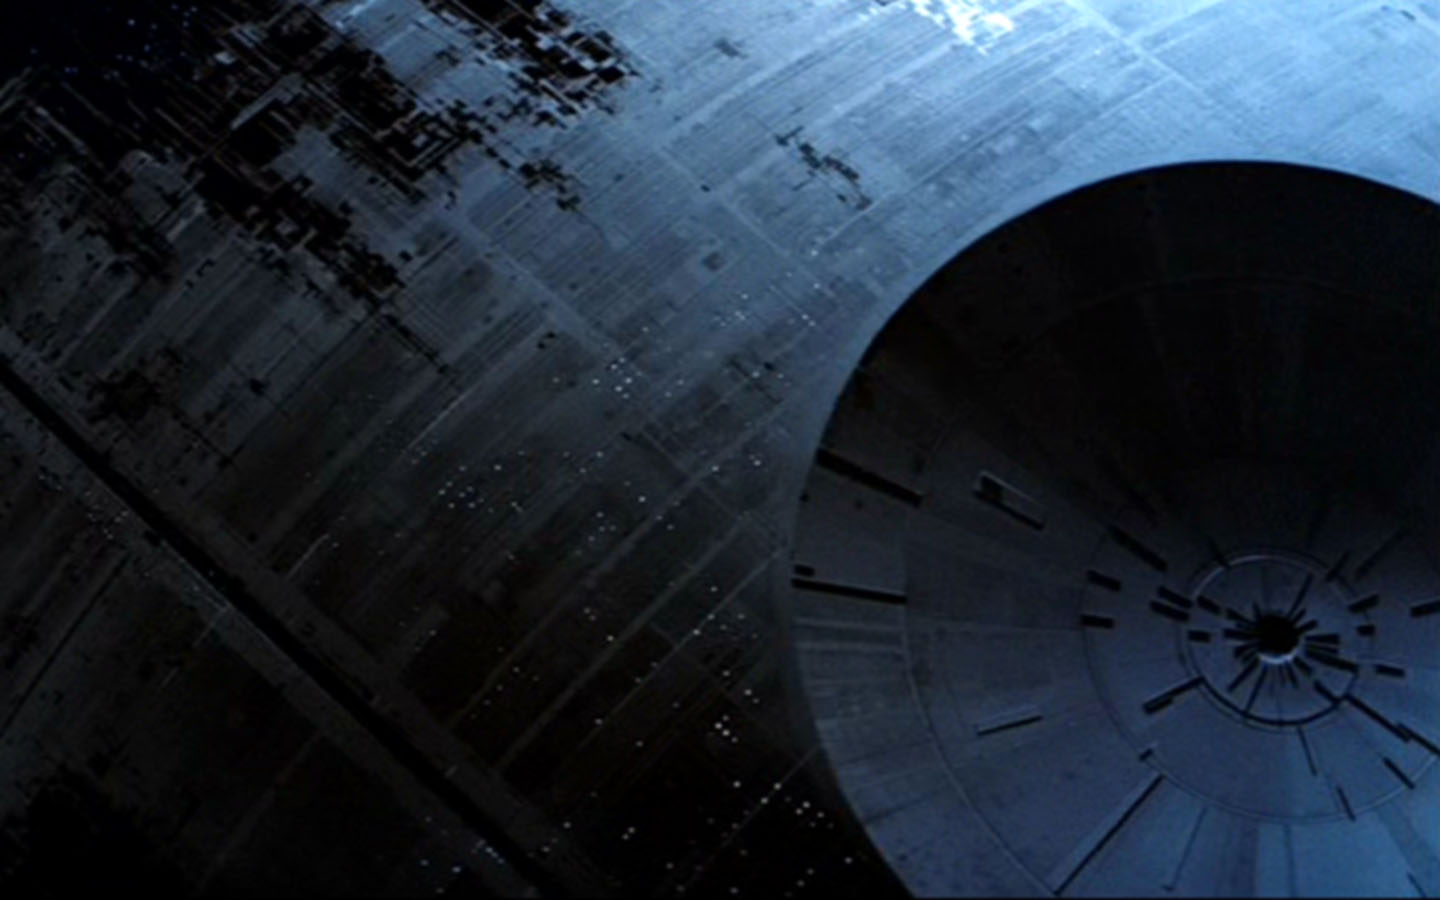 Free Download Death Star Wallpaper Search Results